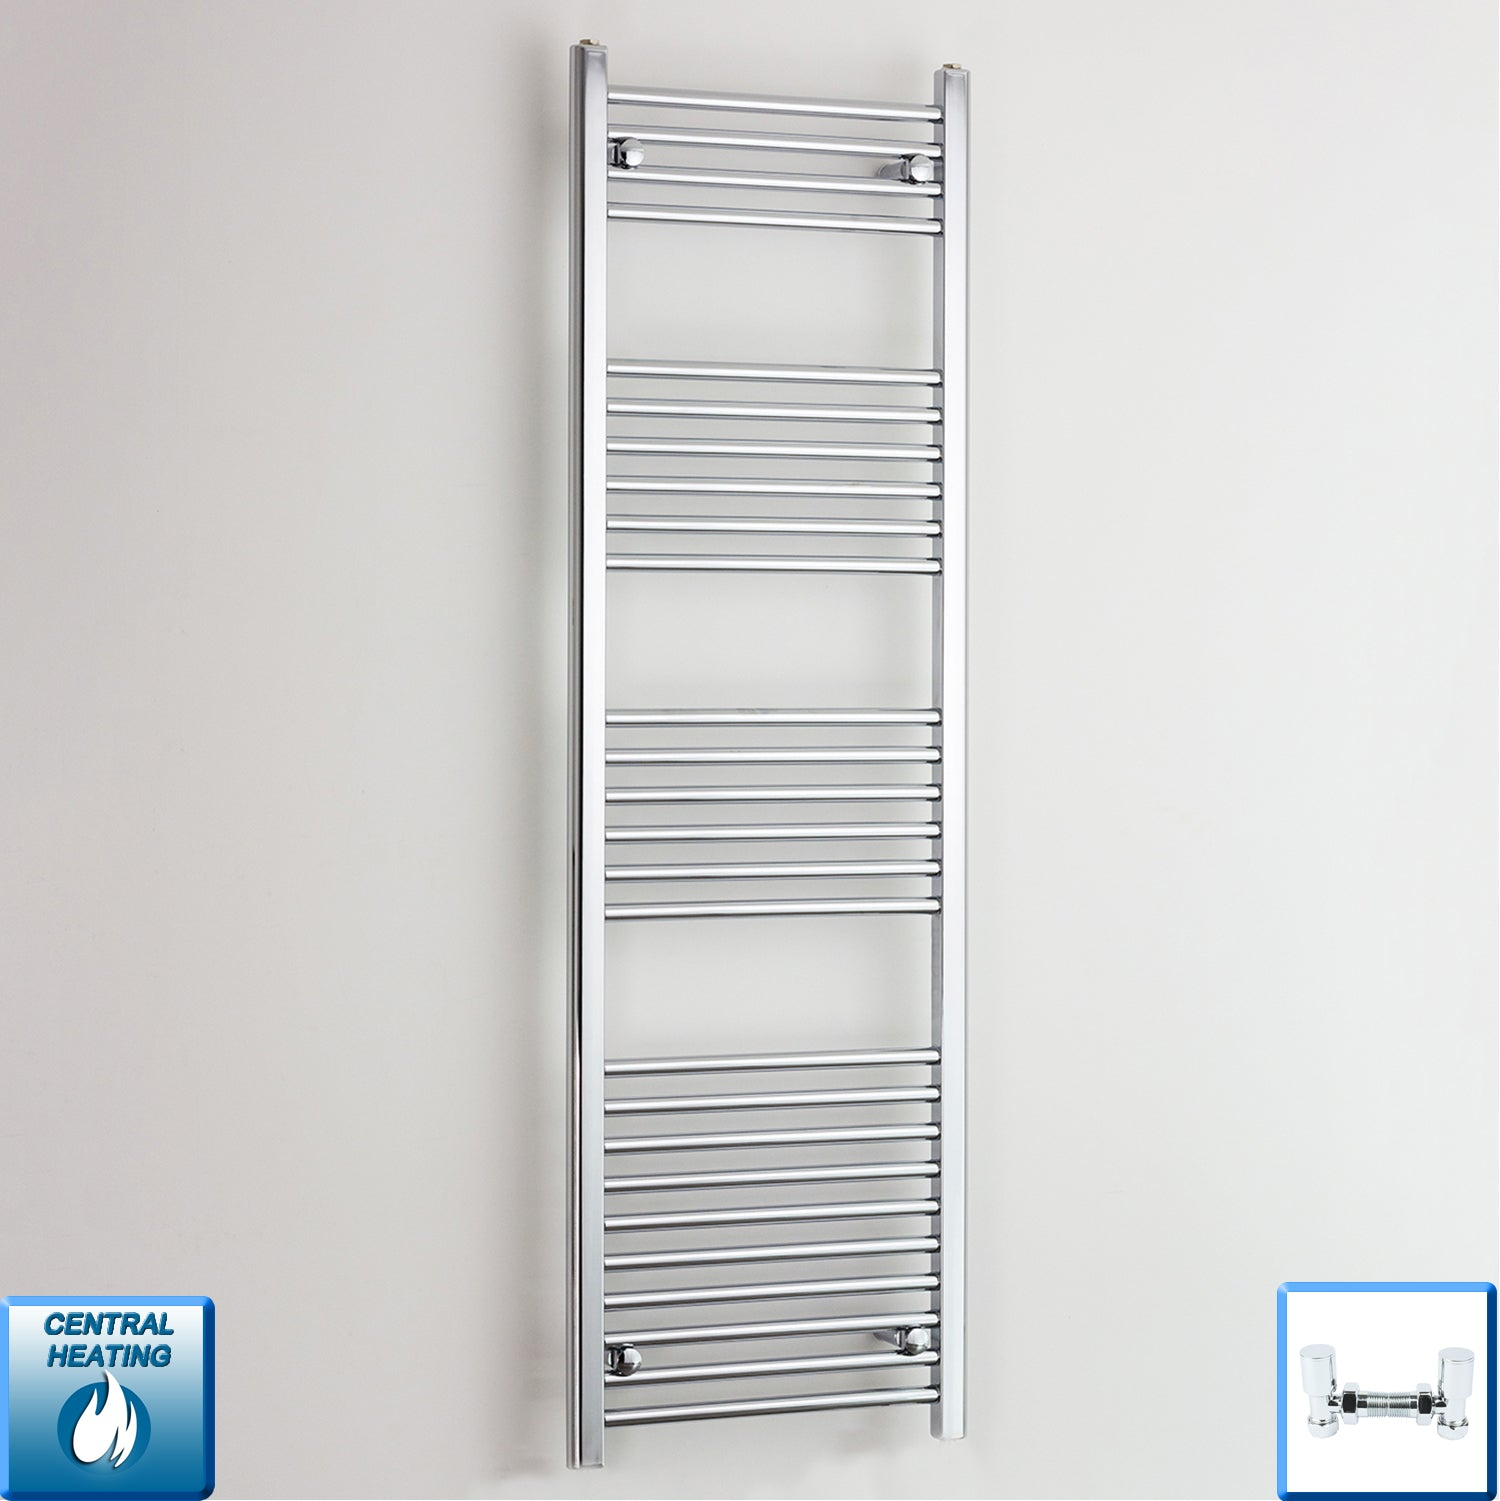 400 mm Wide 1600 mm High Heated Straight Towel Rail Radiator Chrome,With Angled Valve